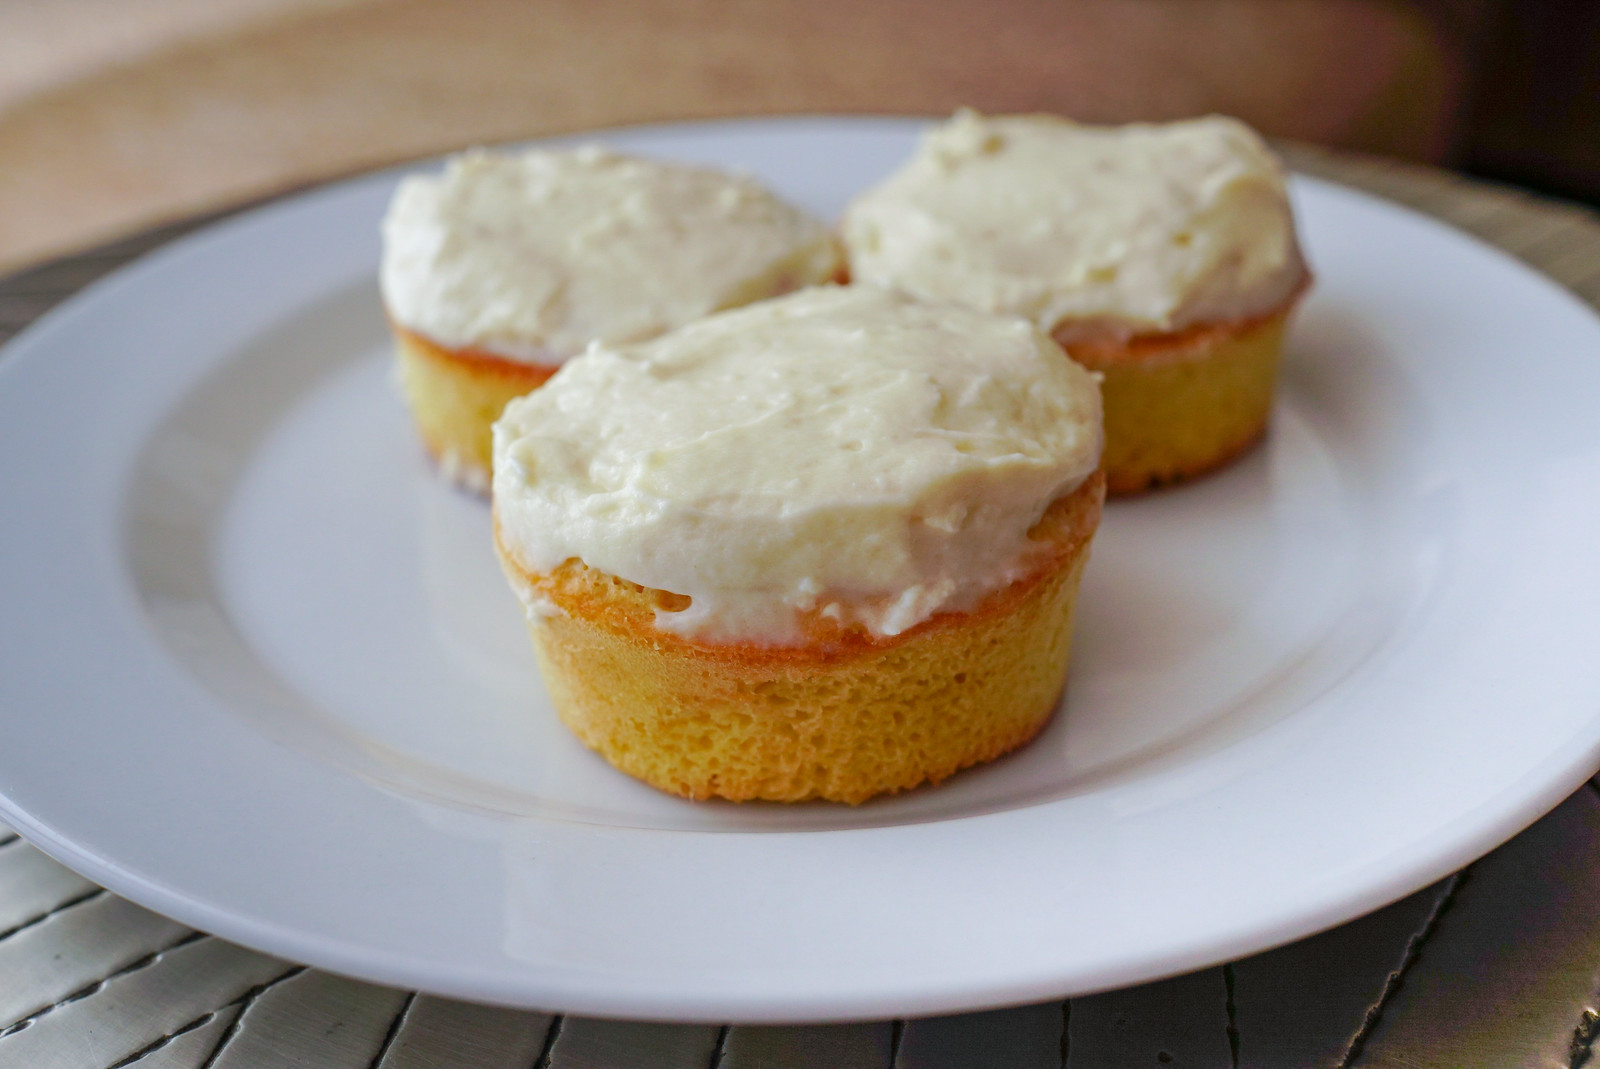 Recipe: Low Carbohydrate Banana Bread Muffins with Cream Cheese Frosting